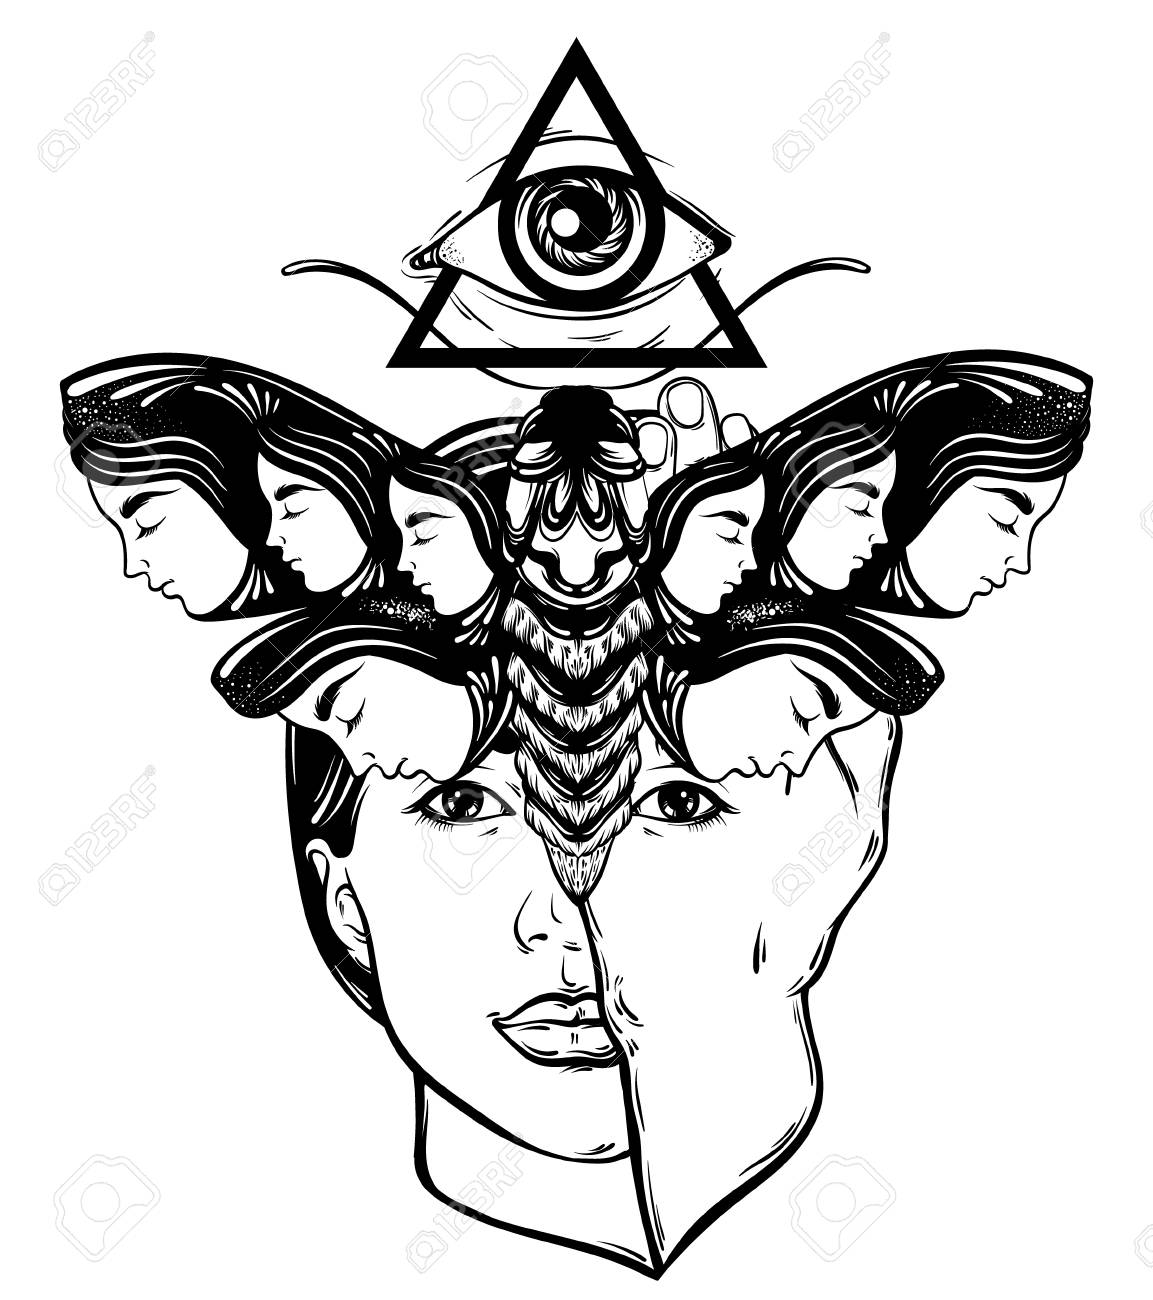 Vector Hand Drawn Illustration Of Moth With Female Faces On The